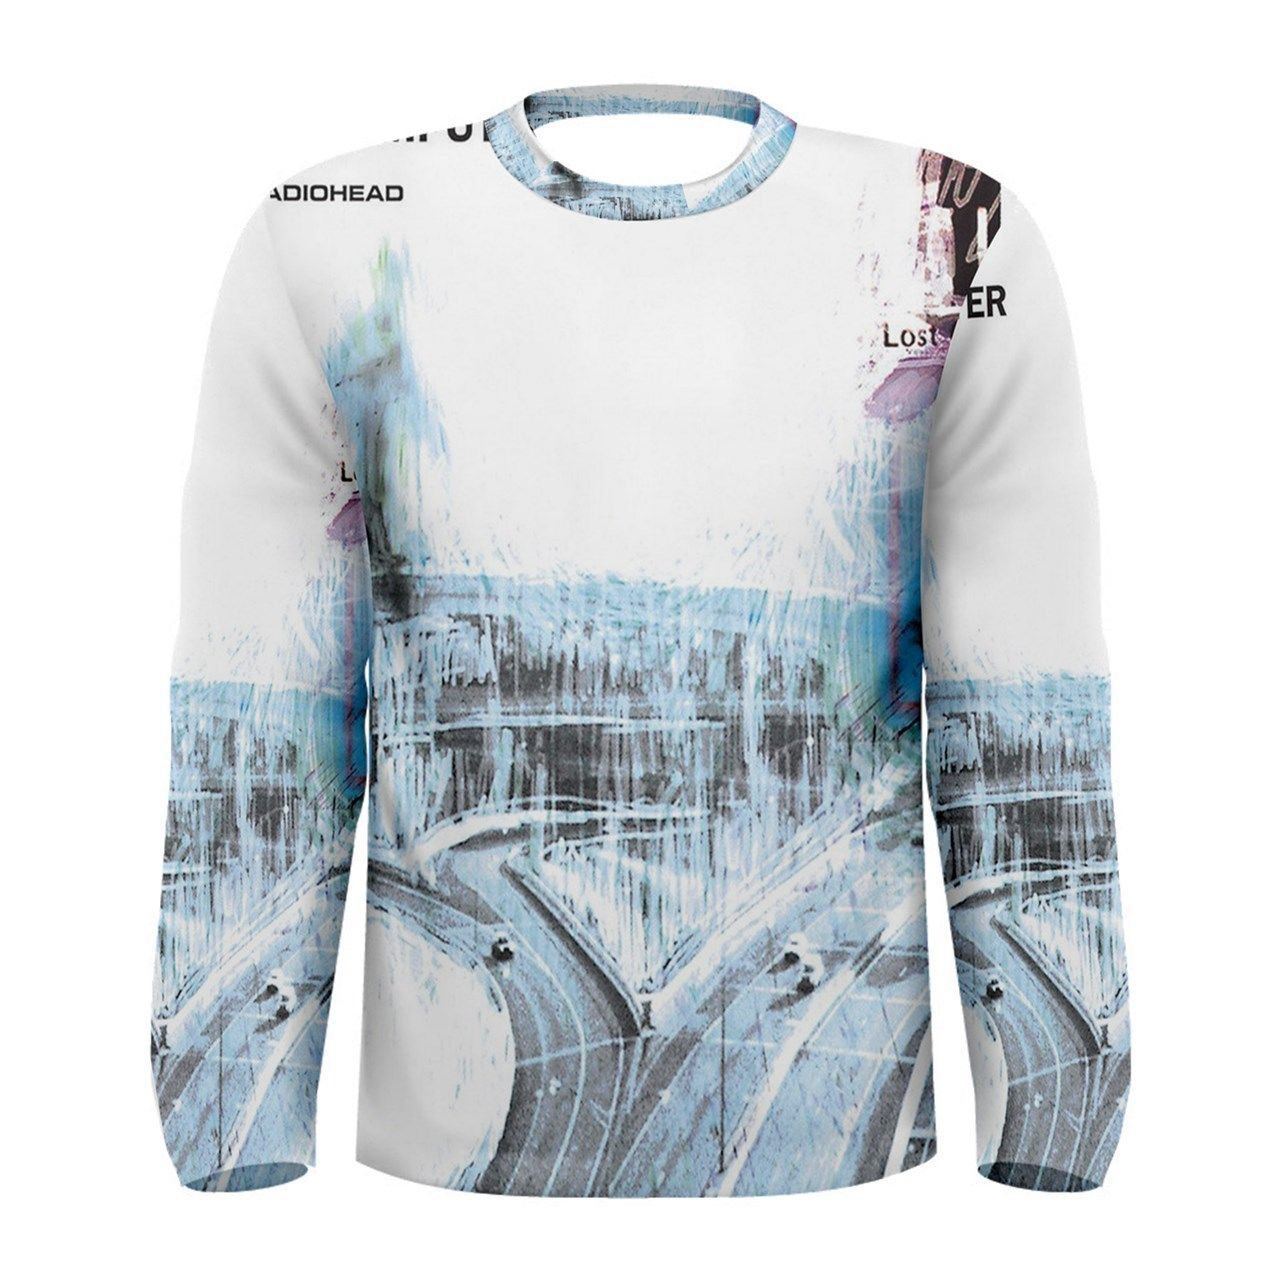 a8bf44625e7f 28.99 | New RADIOHEAD OK COMPUTER Rock Band Sublimation Men's Long Sleeve T- Shirt